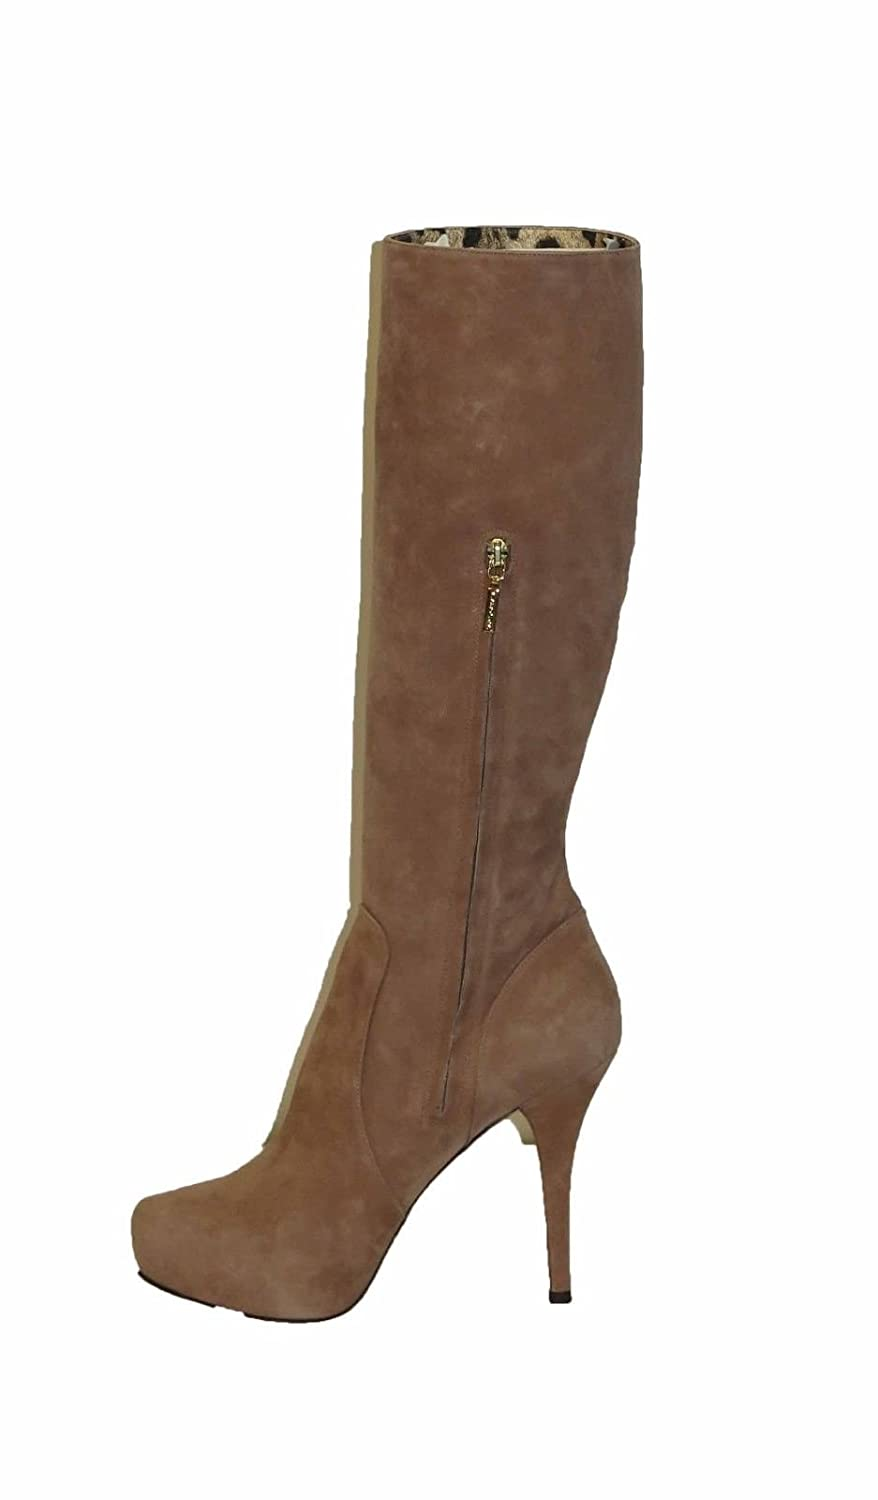 DOLCE & GABBANA Brown Suede Tall Boots Size 9